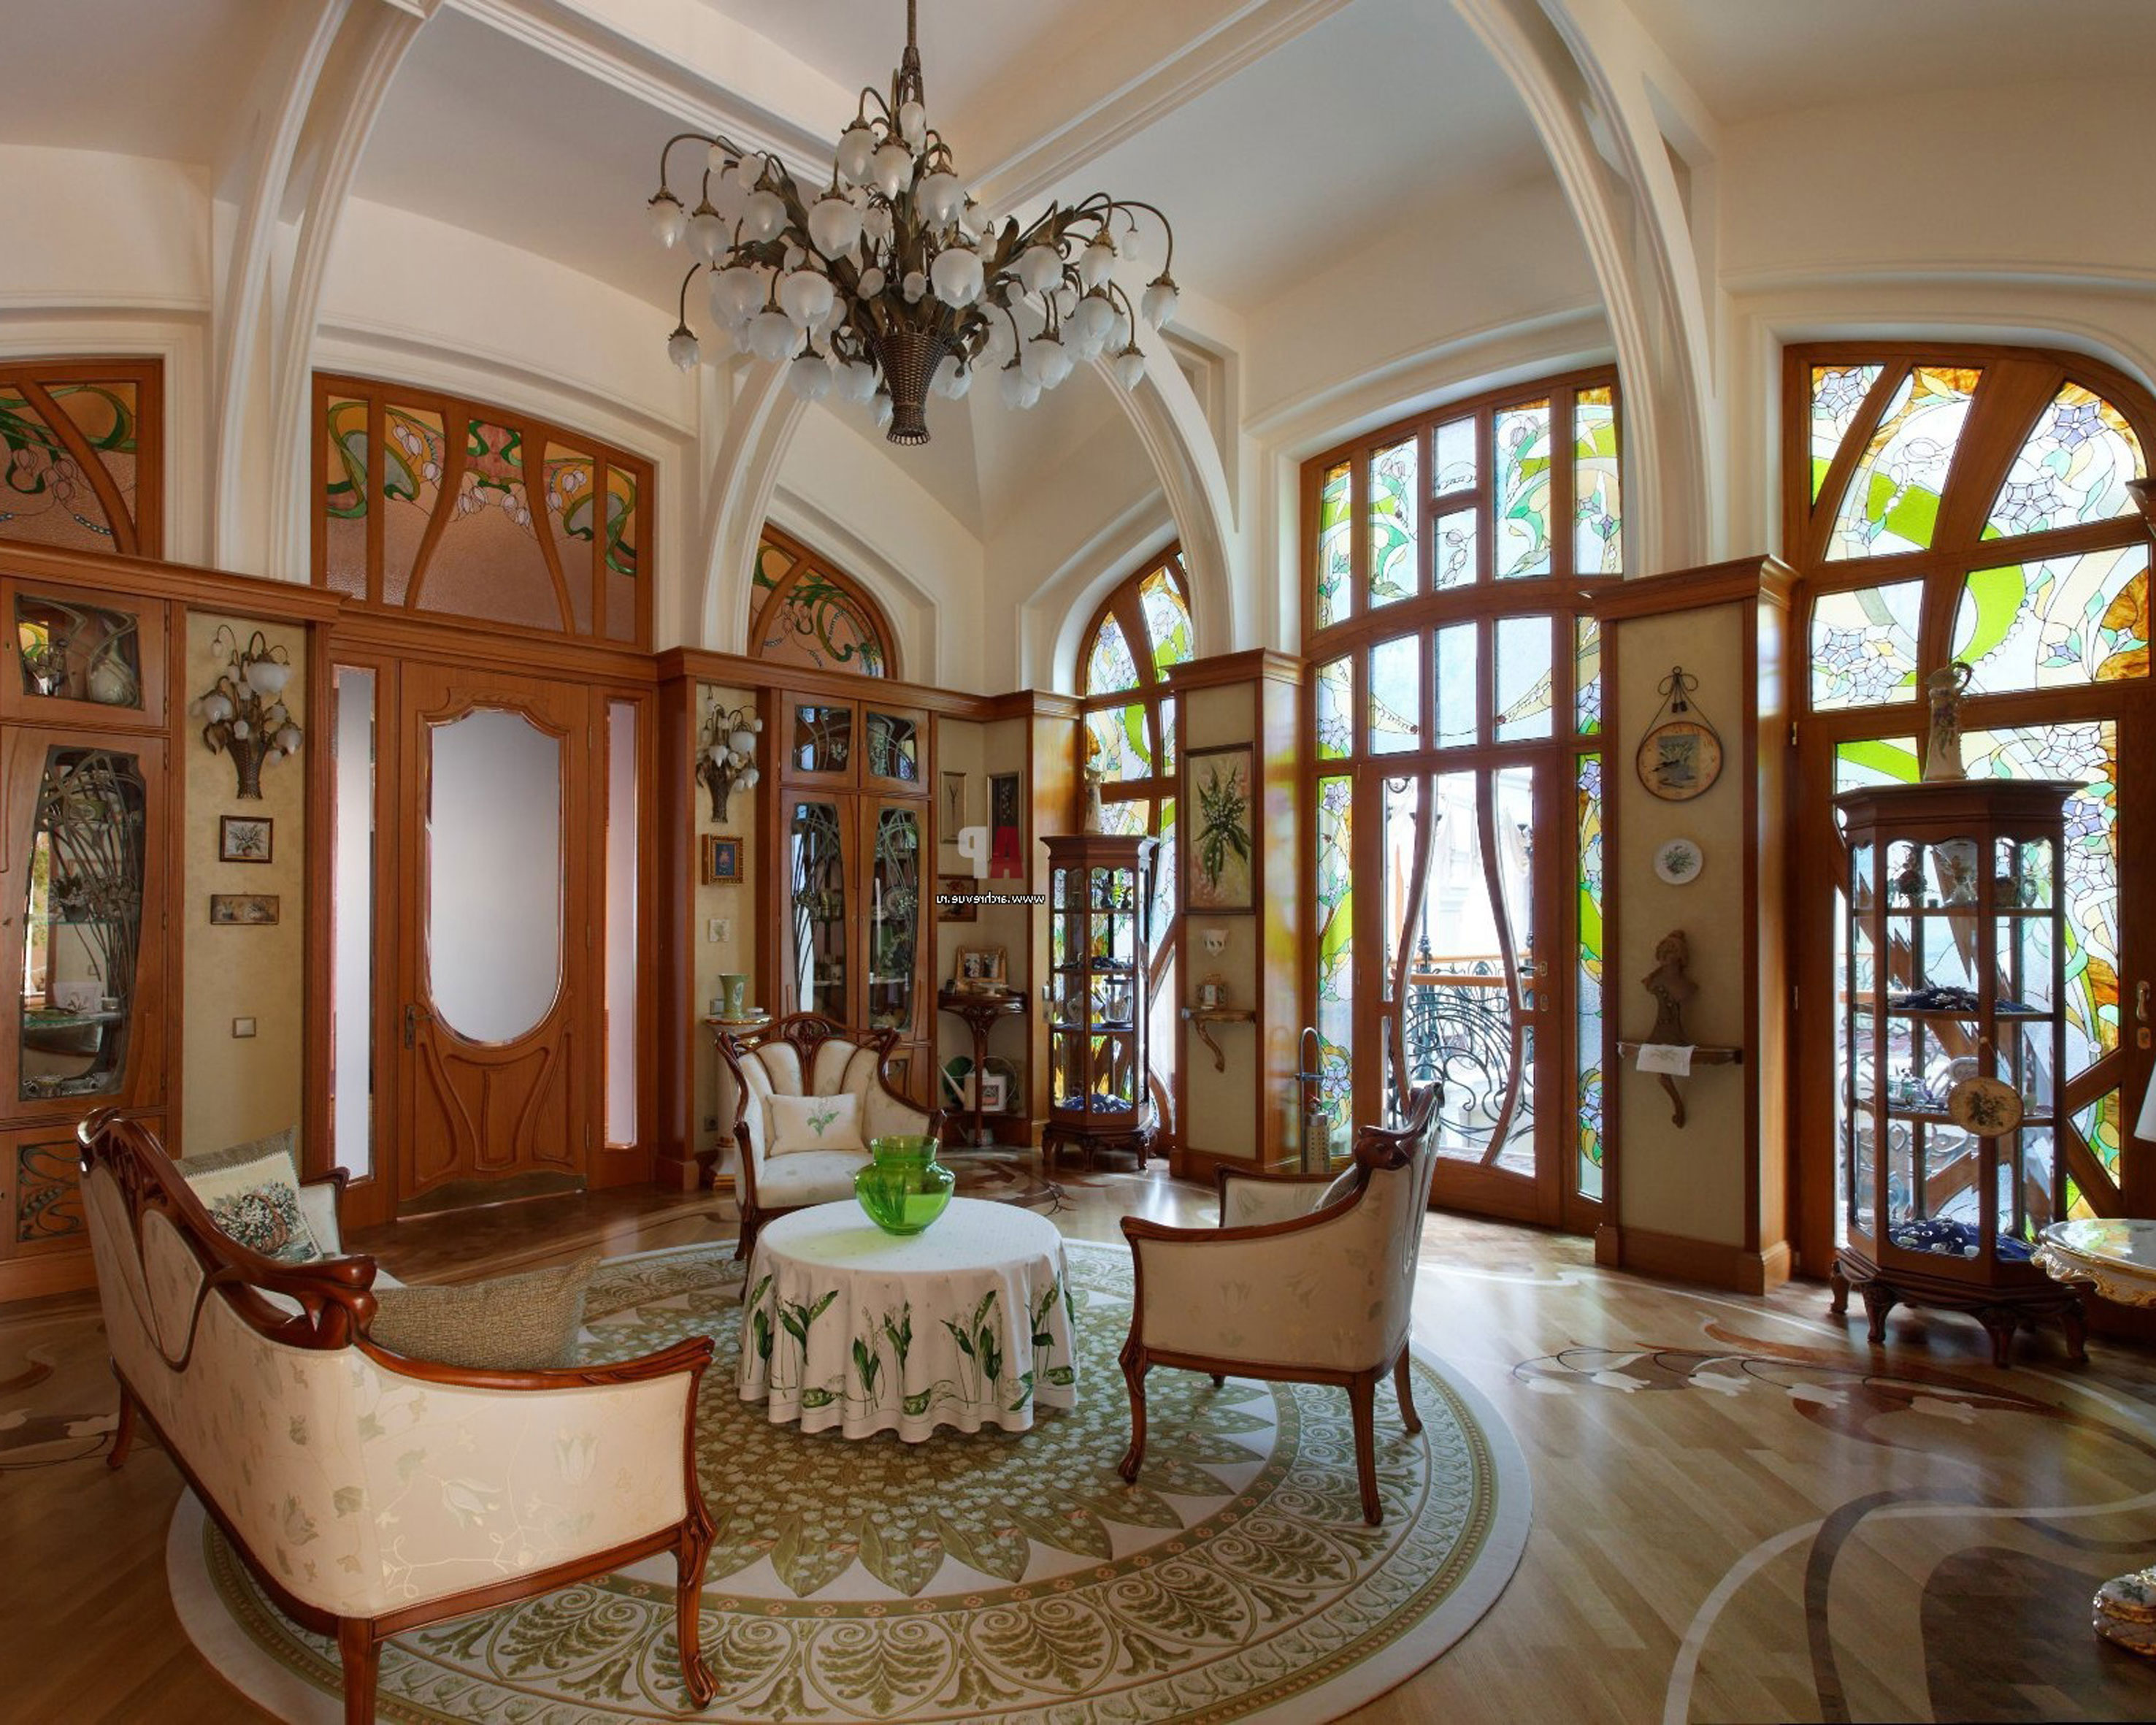 Décoration Art Nouveau Art Nouveau Interior Design With Its Style Decor And Colors